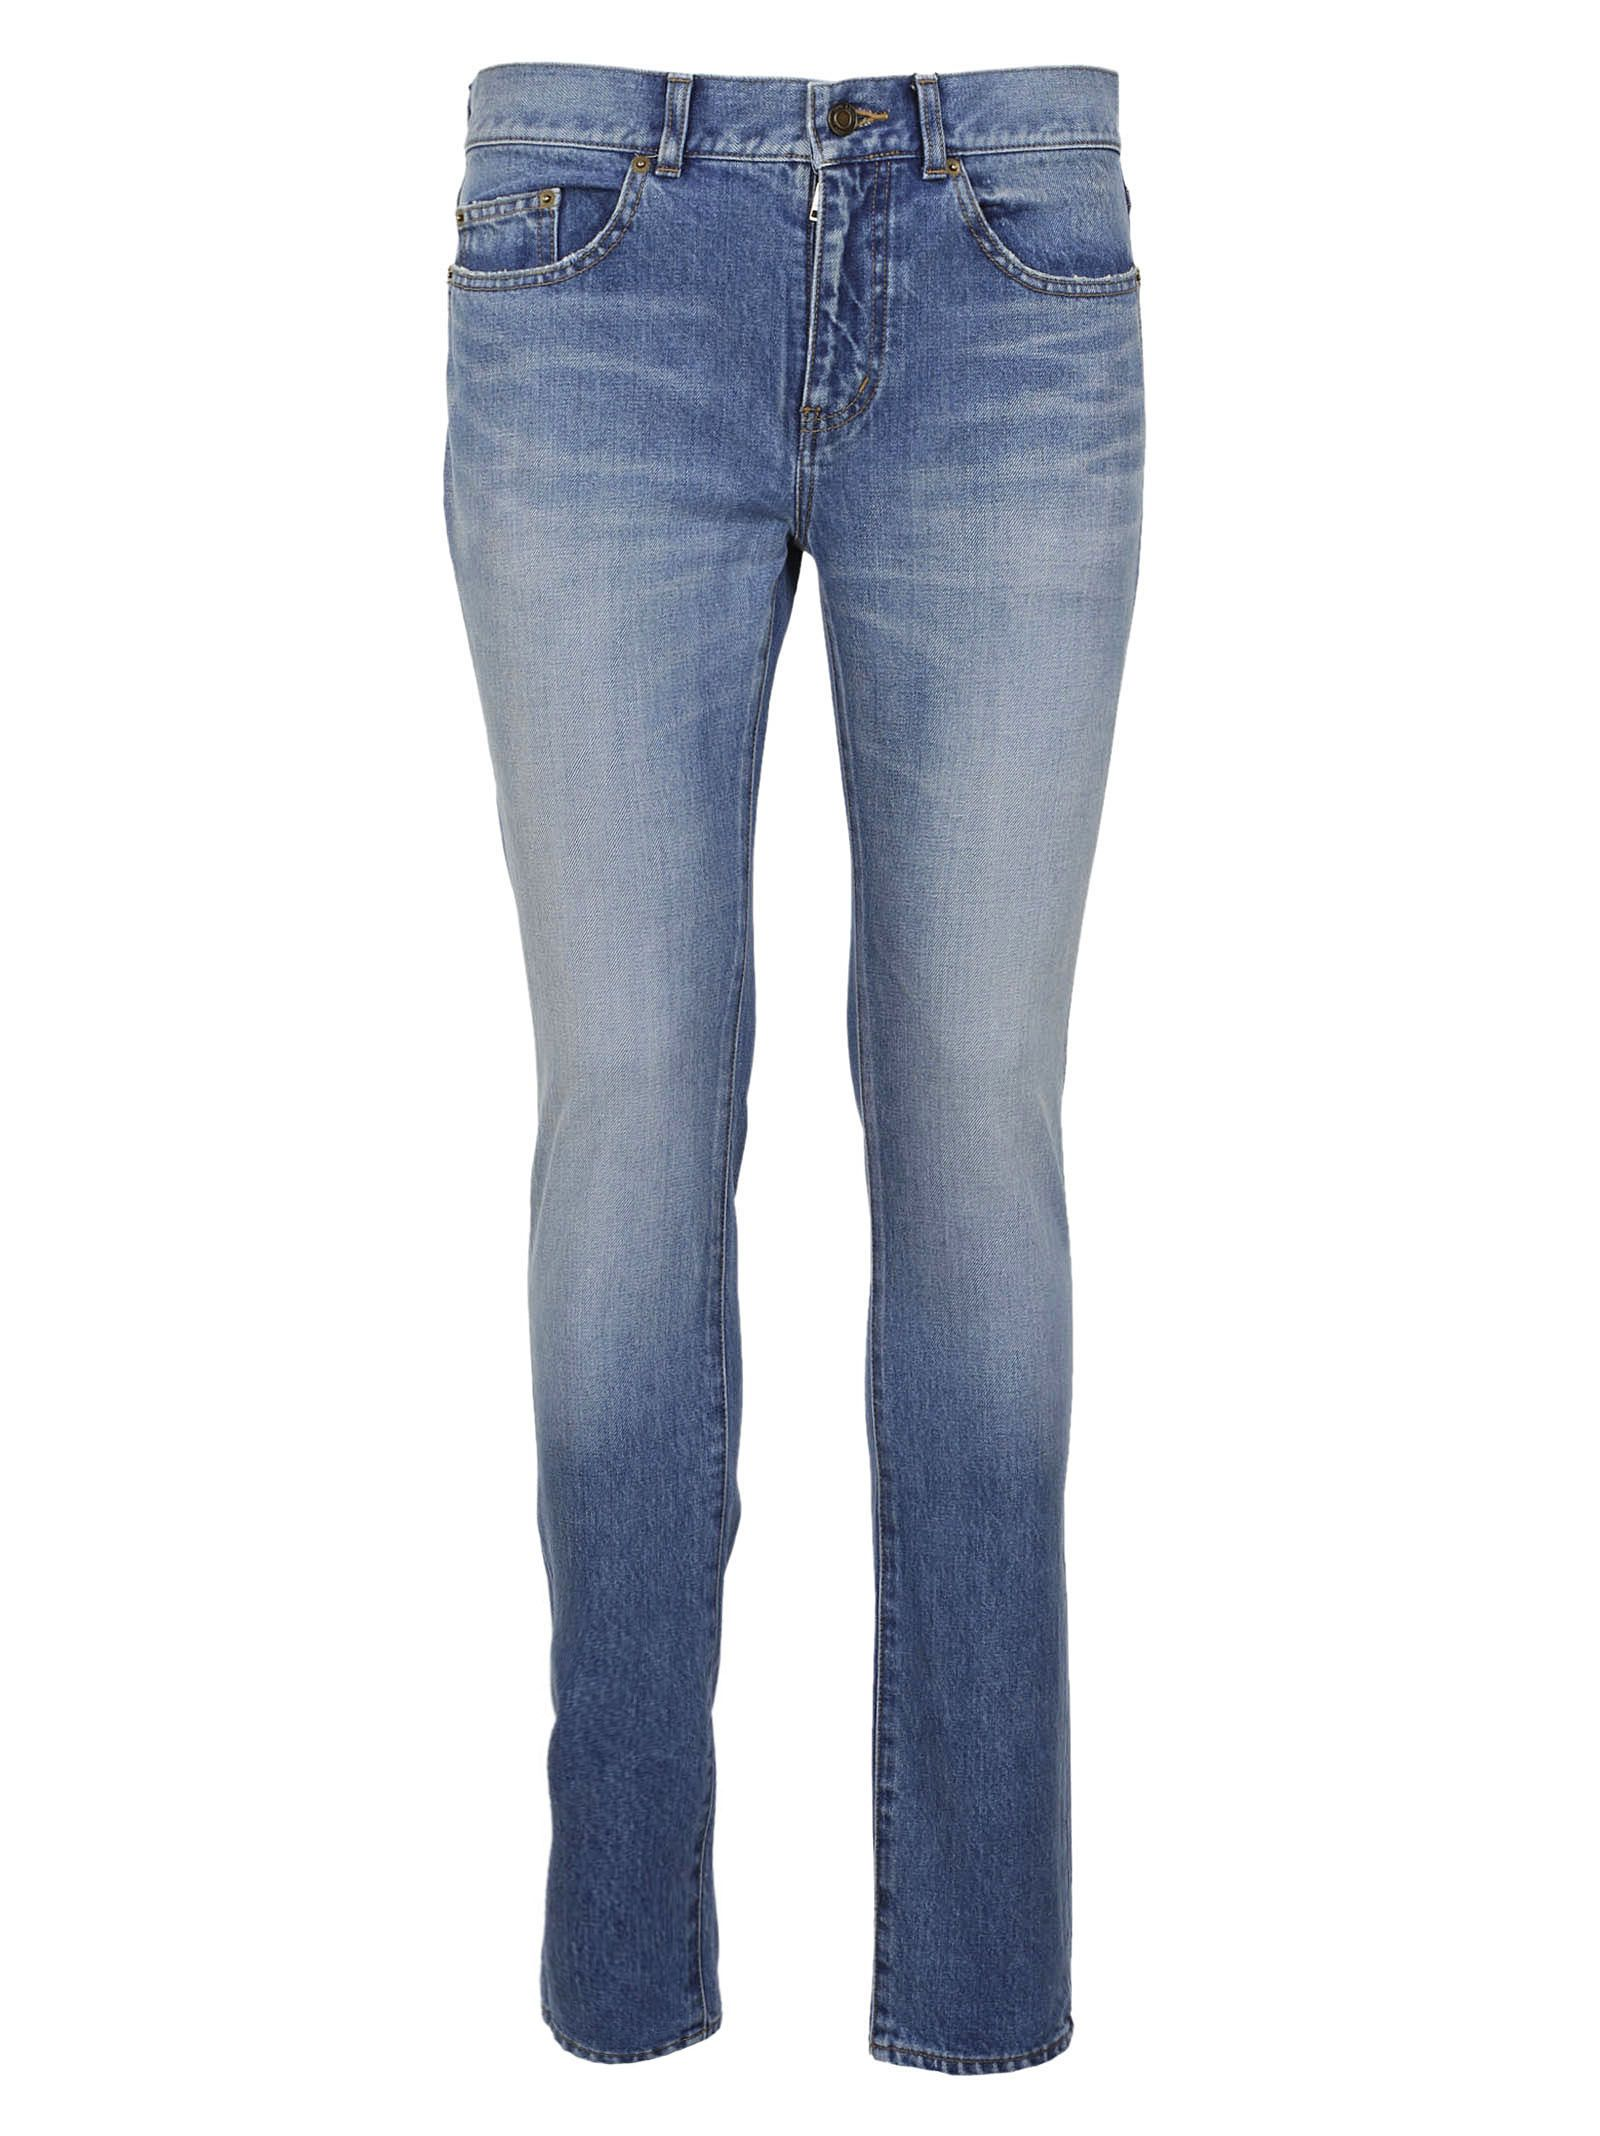 Saint Laurent Low Waisted Skinny Jeans